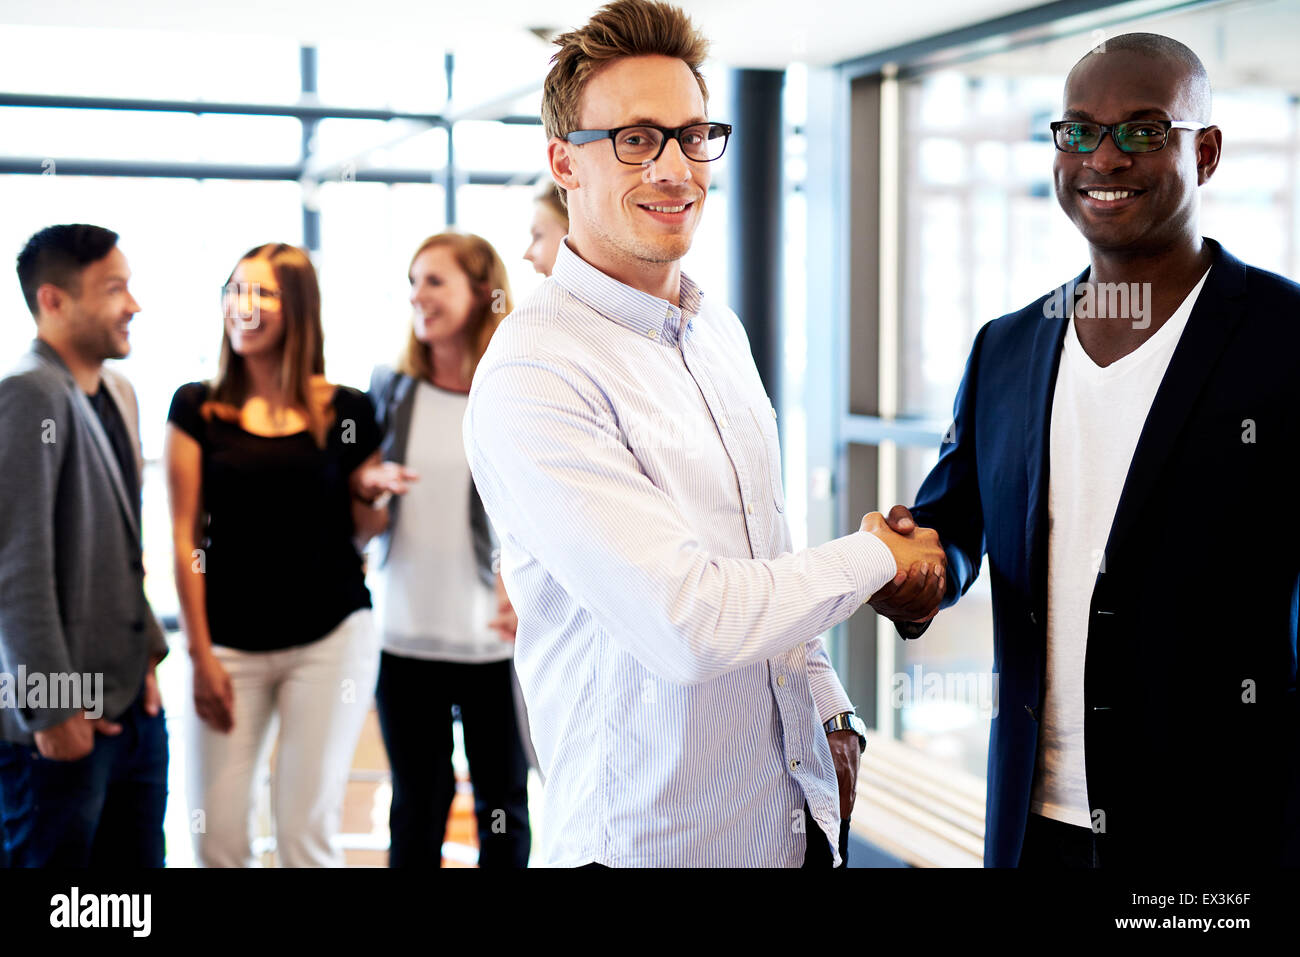 Black male executive and white male executive shaking hands looking at camera, colleagues in background - Stock Image